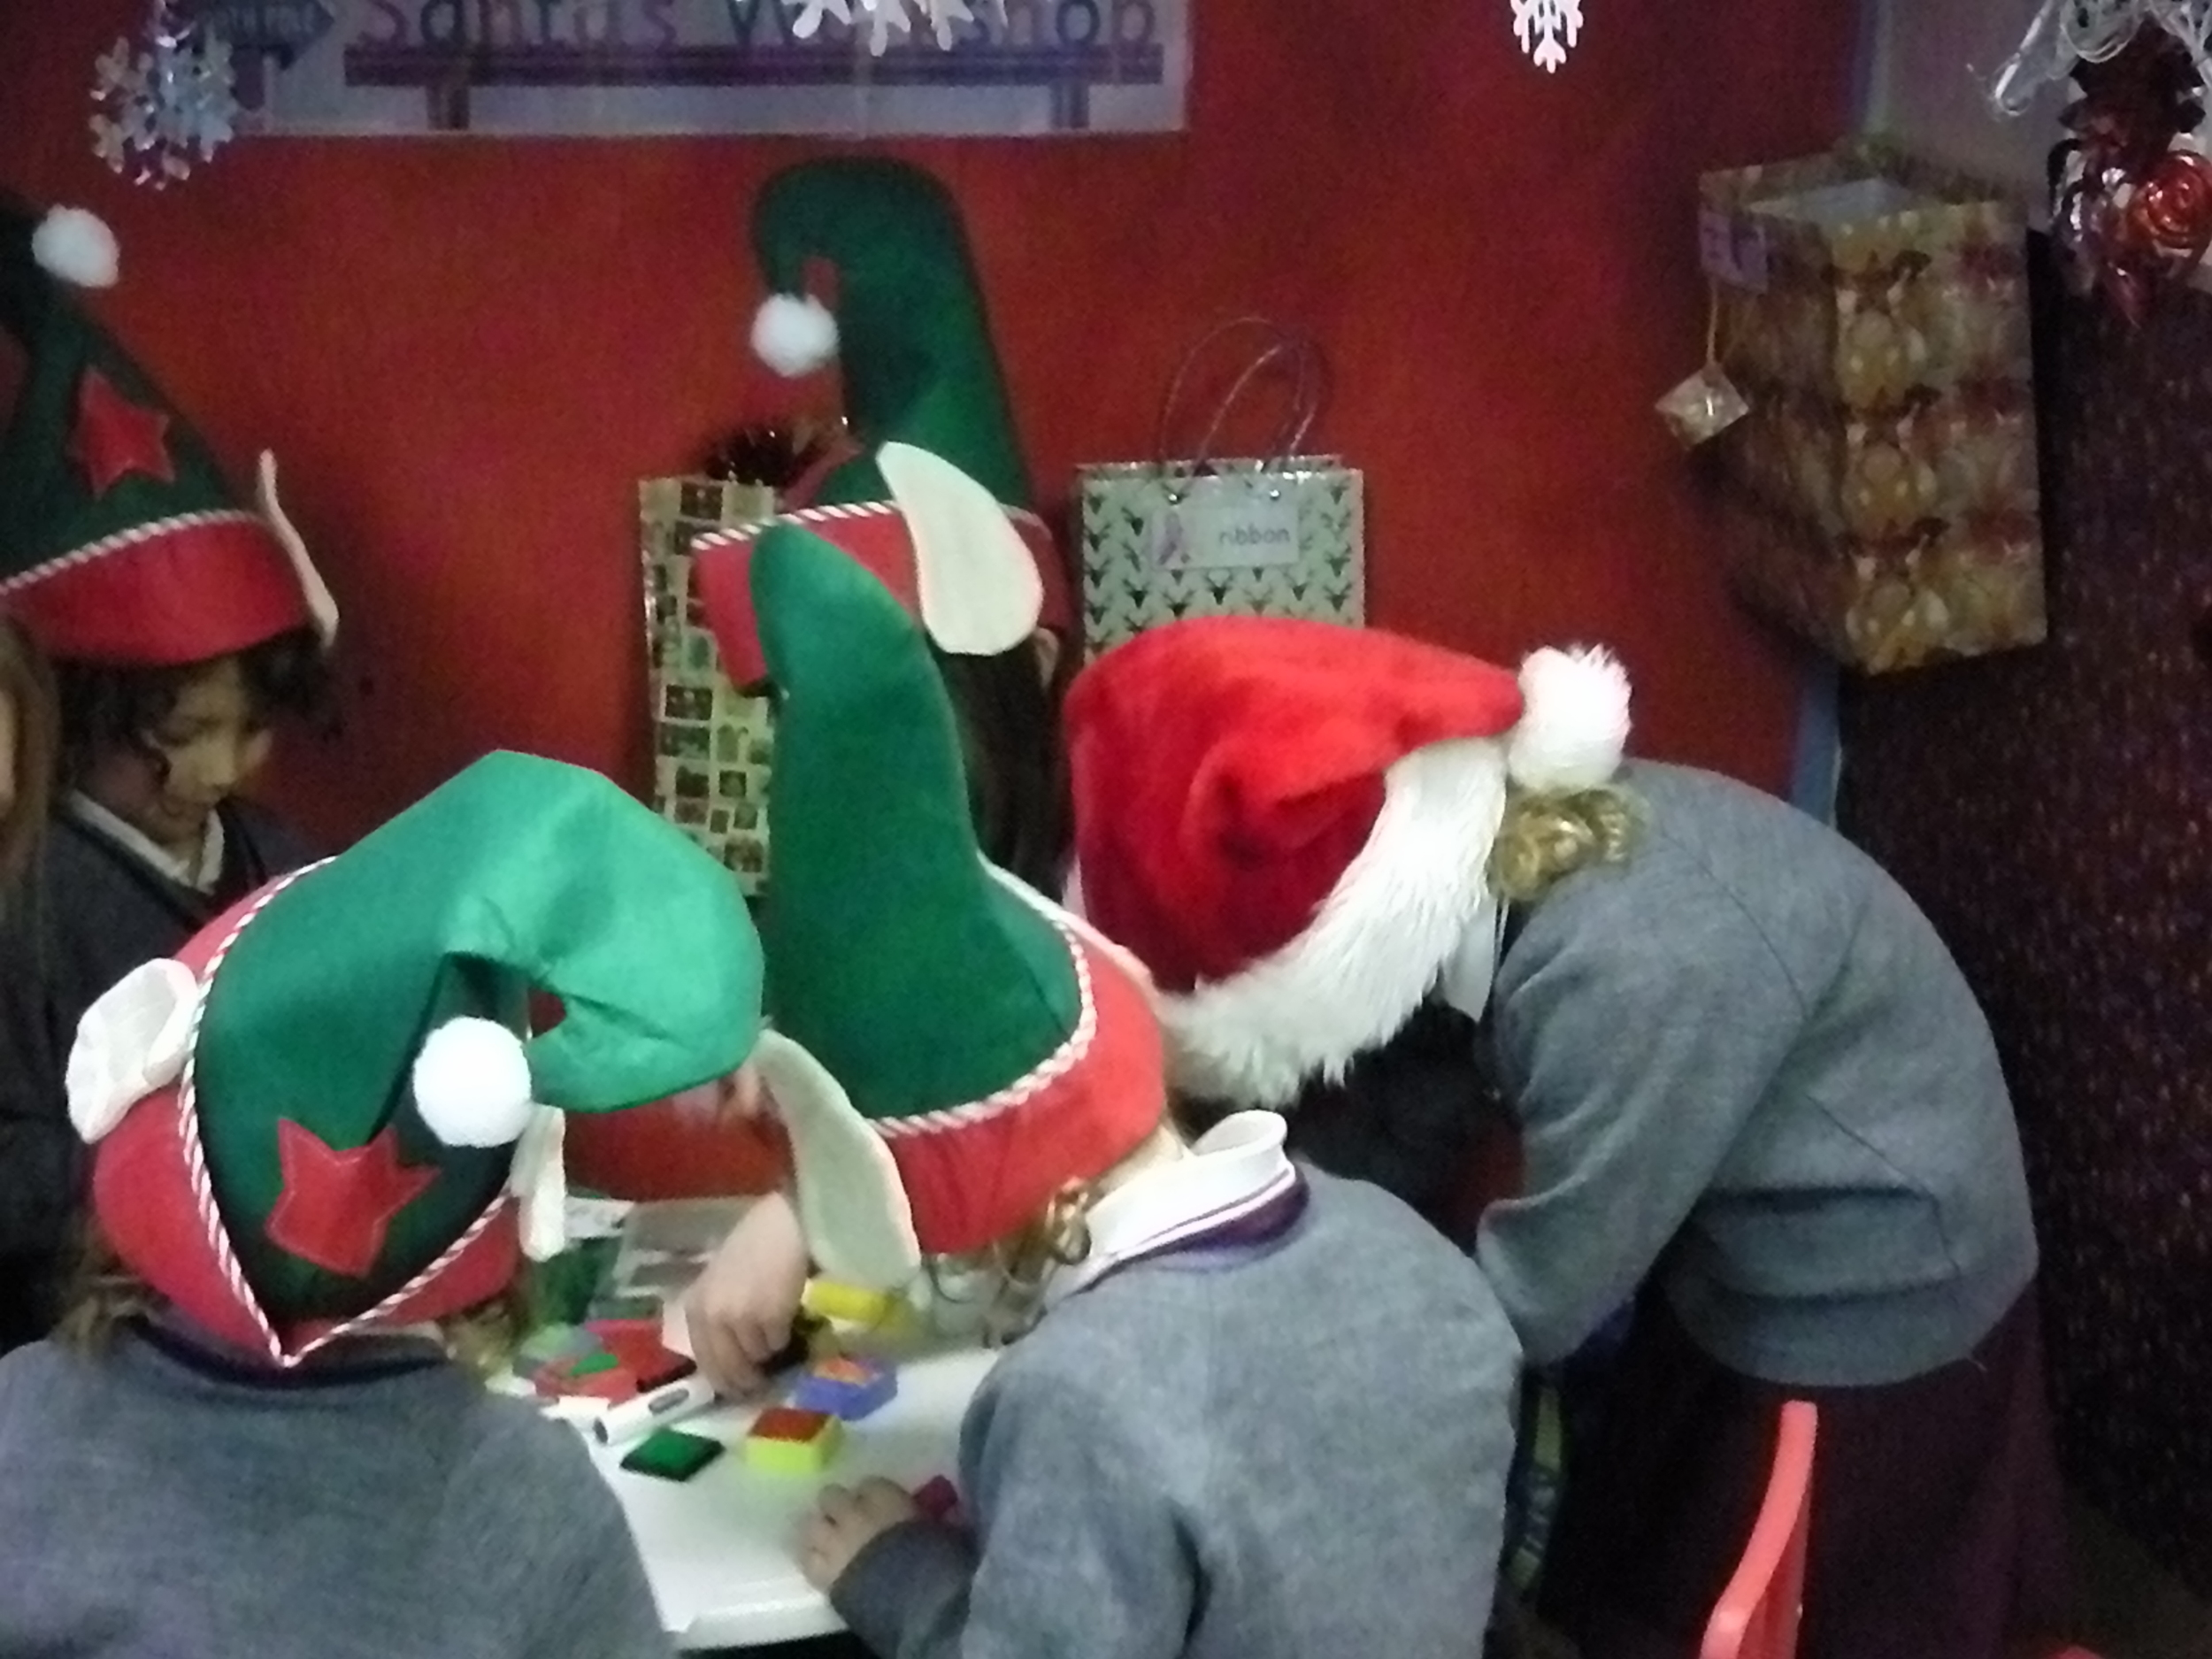 Santa's elves are so busy making gift tags.